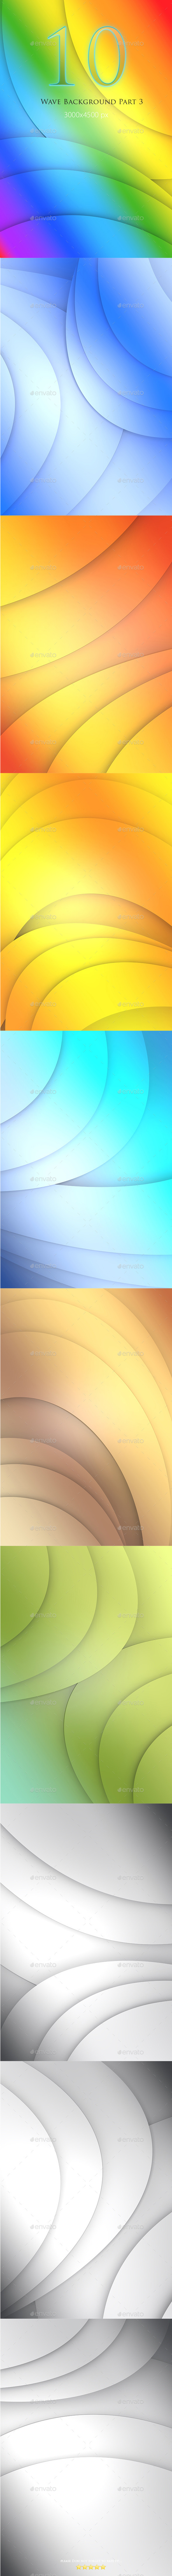 10 Wave Background Part 3 - Abstract Backgrounds